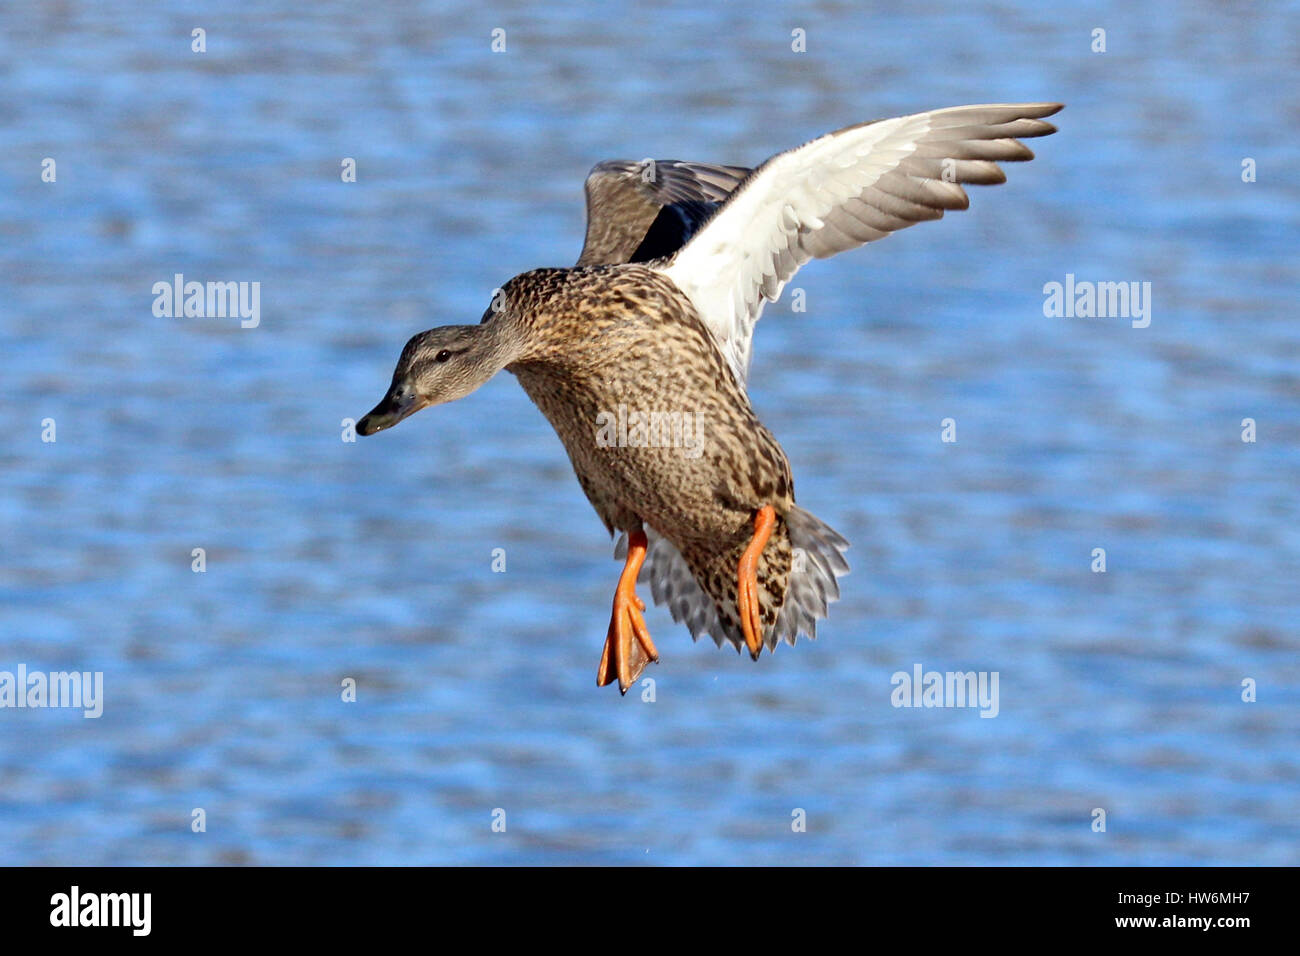 A Female Mallard Duck Flying In To Land On A Lake Stock Photo